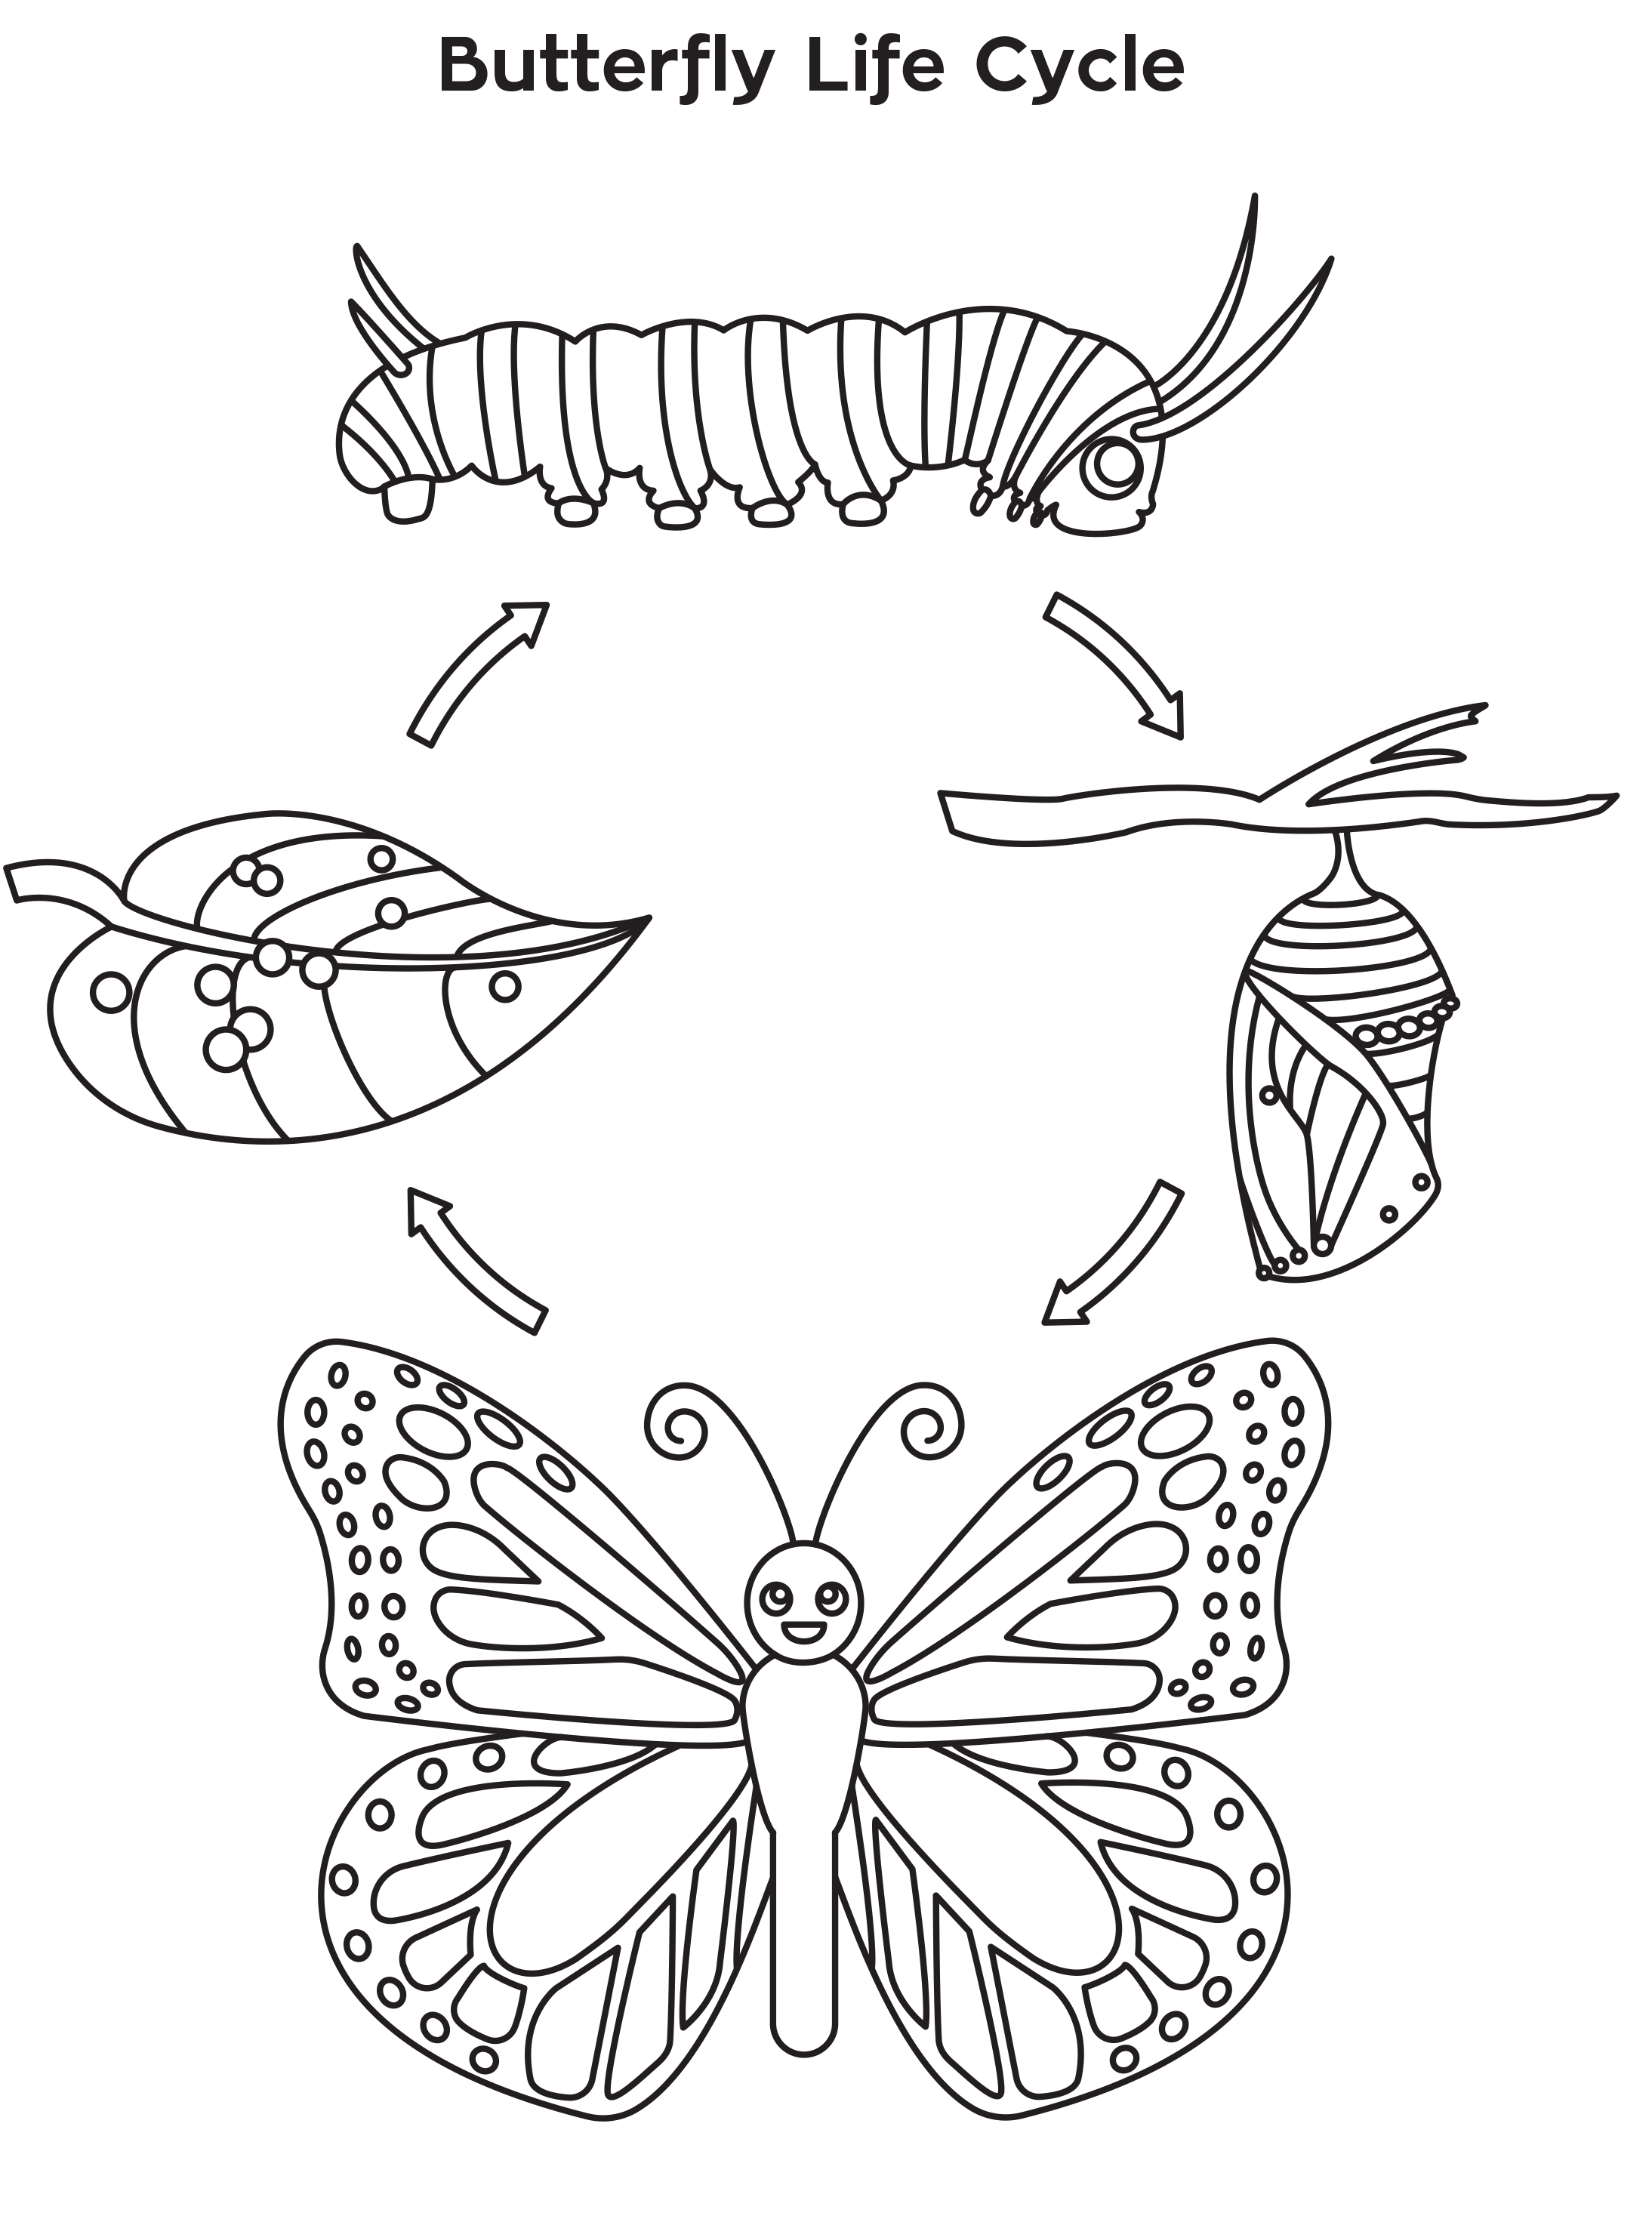 Life Cycle Of A Butterfly Drawing At Getdrawings